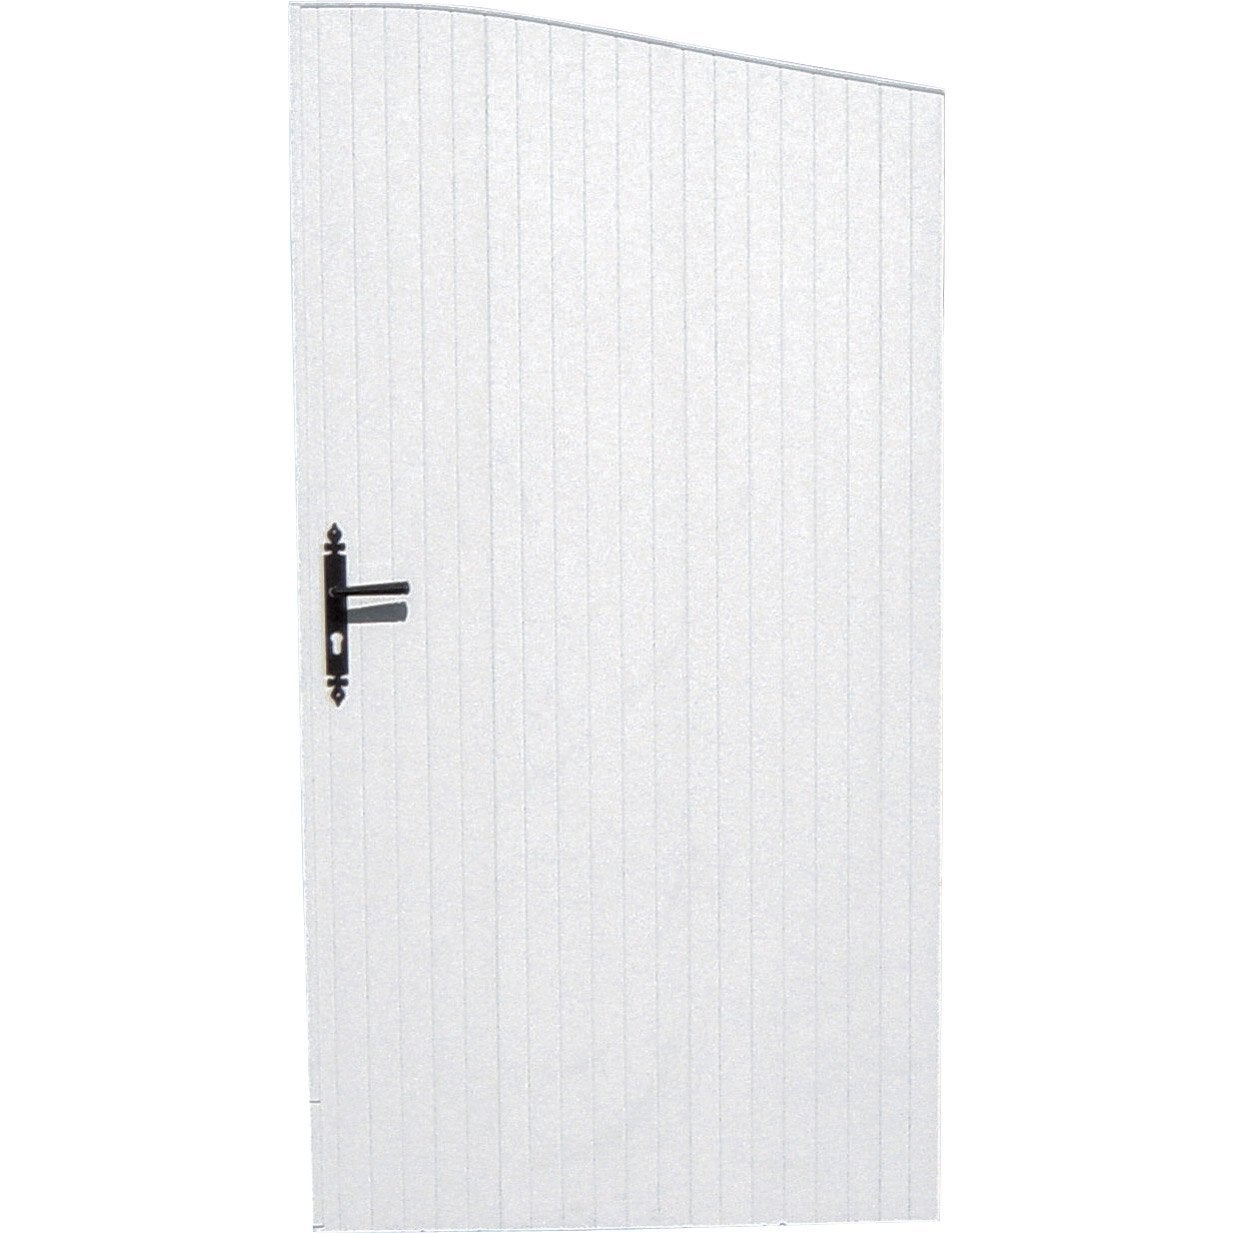 Portillon battant quiberon x cm blanc leroy for Portillon de jardin pvc